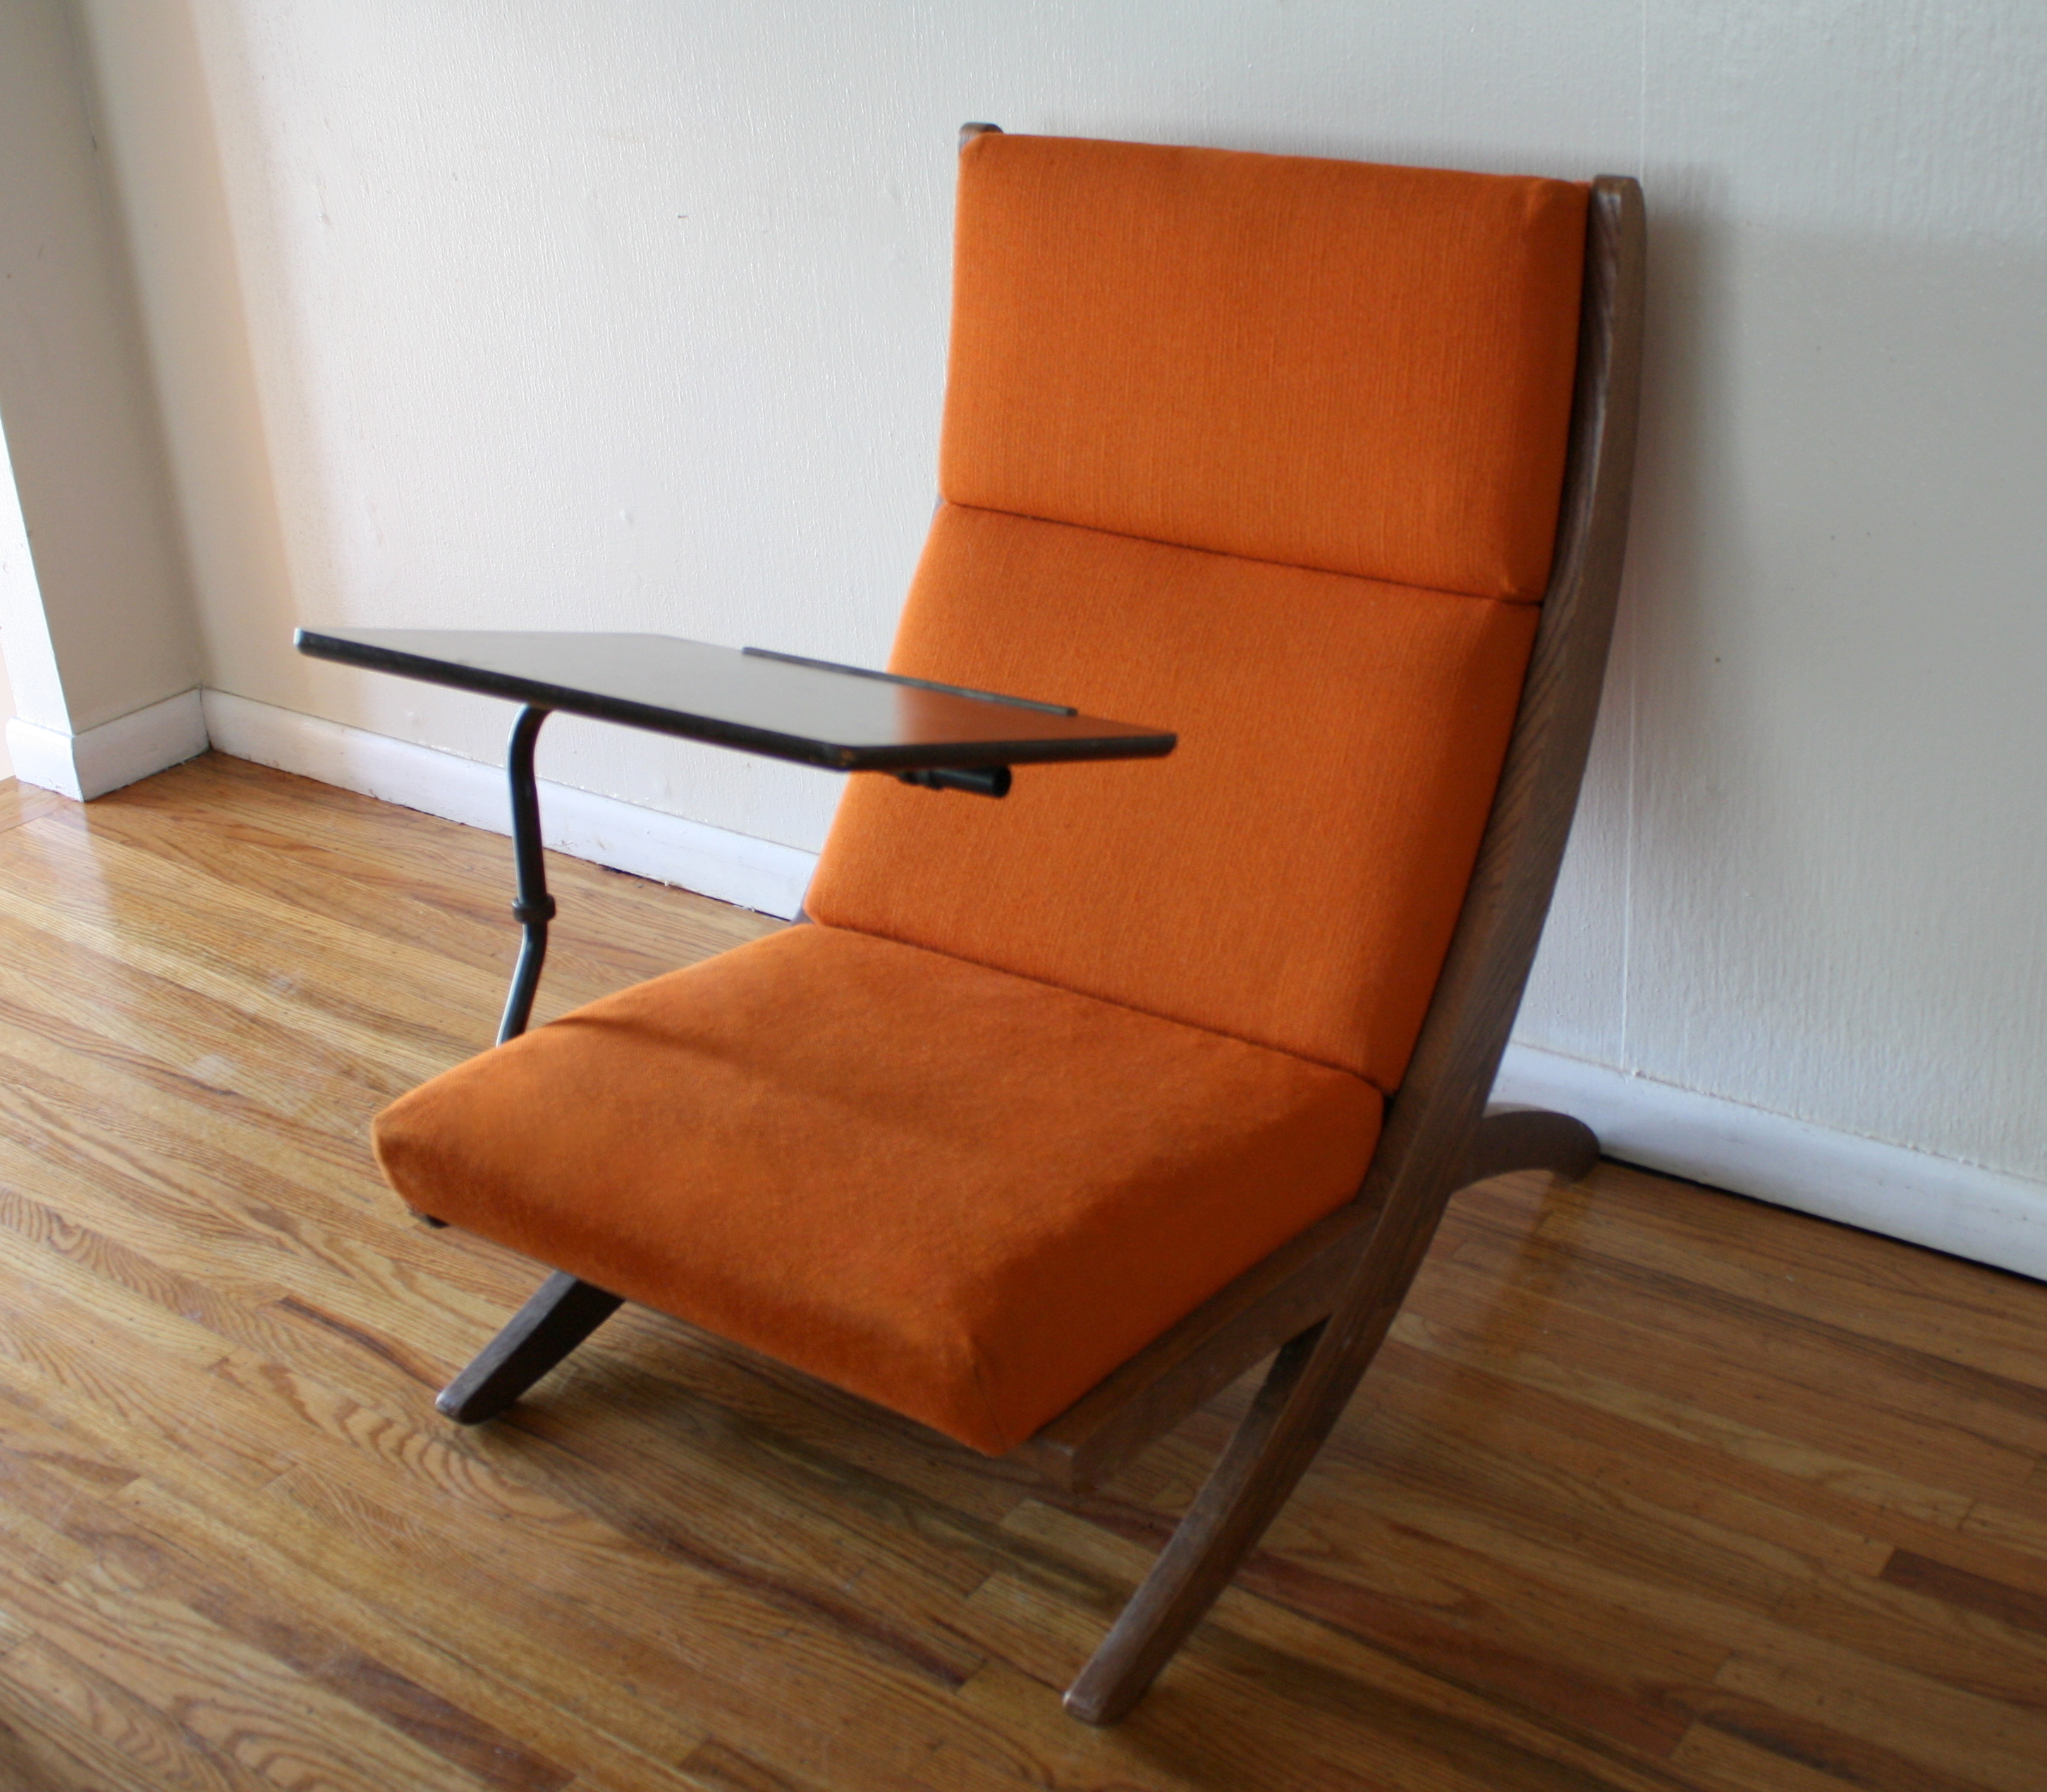 Mcm Orange Chair With Detachable Writing Desk 2 Picked